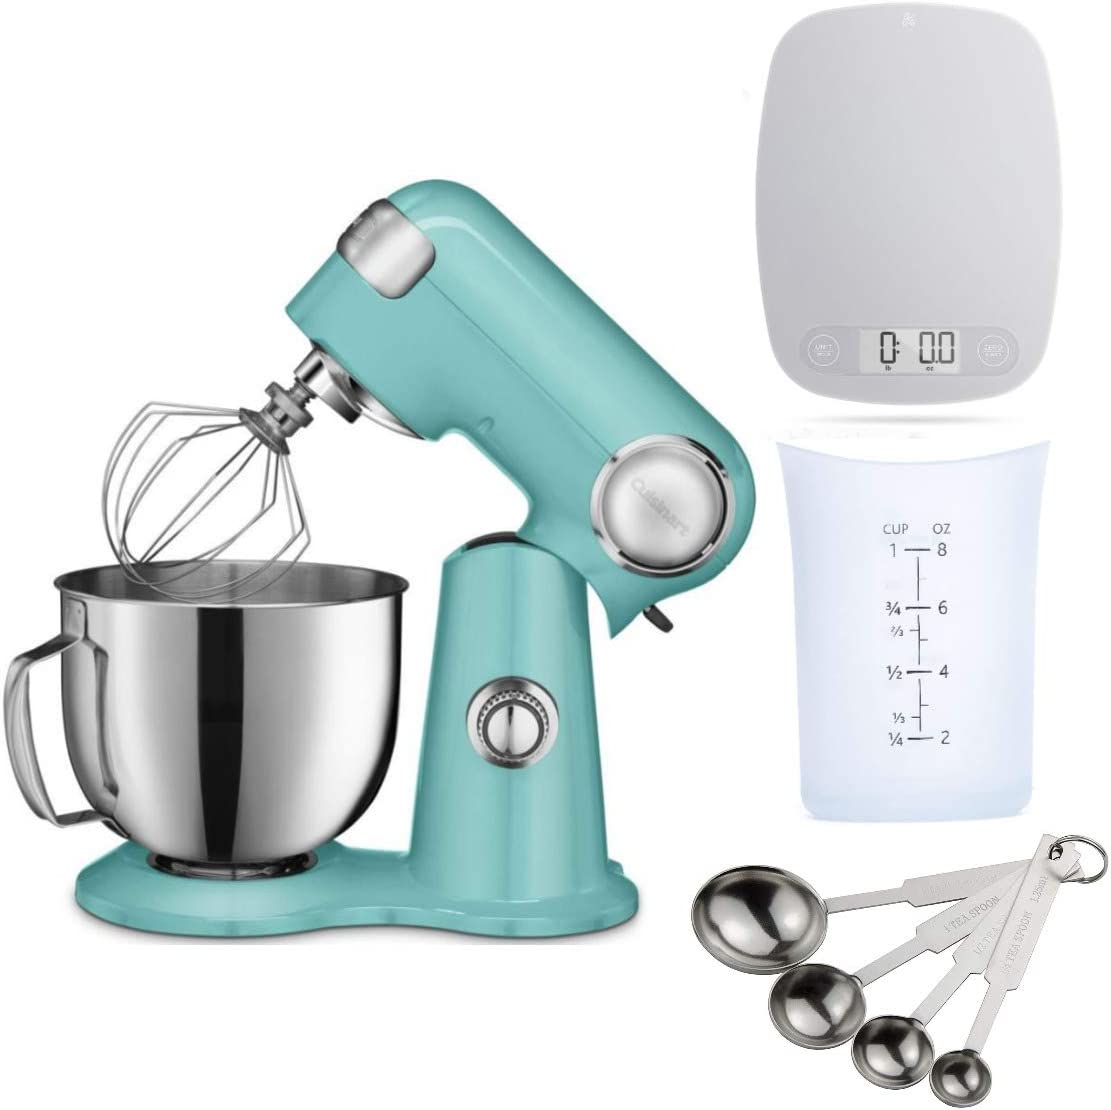 Cuisinart SM-50TQ Precision Master 5.5-Quart Stand Mixer with Kitchen Scale, Measuring Cup and Measuring Spoon Set Bundle (4 Items)